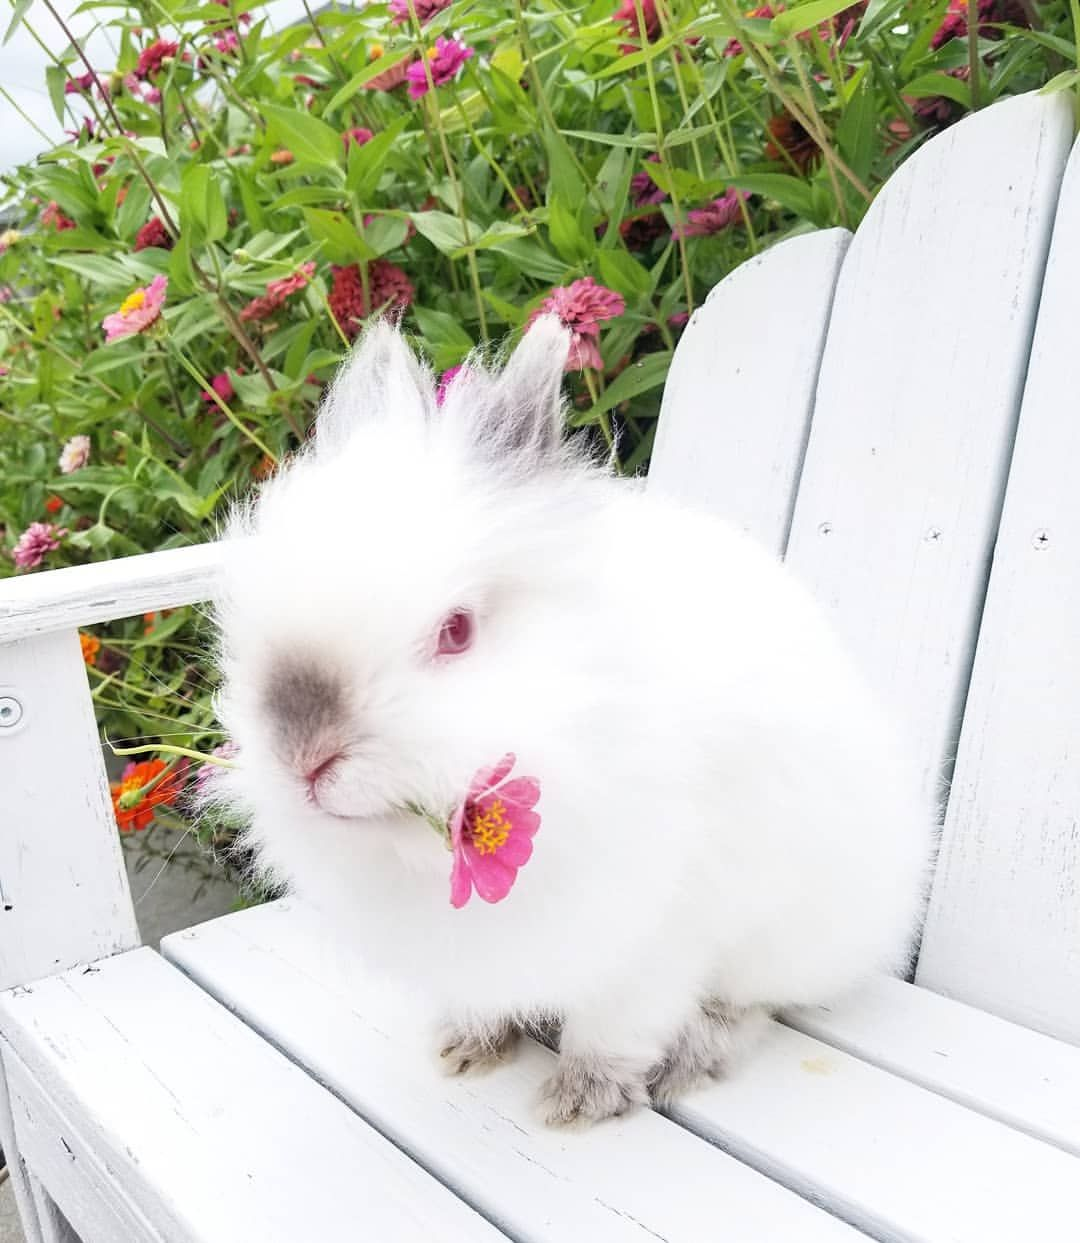 Pin by Ruby on Zinnia Cottage Happy day farm, Cute bunny